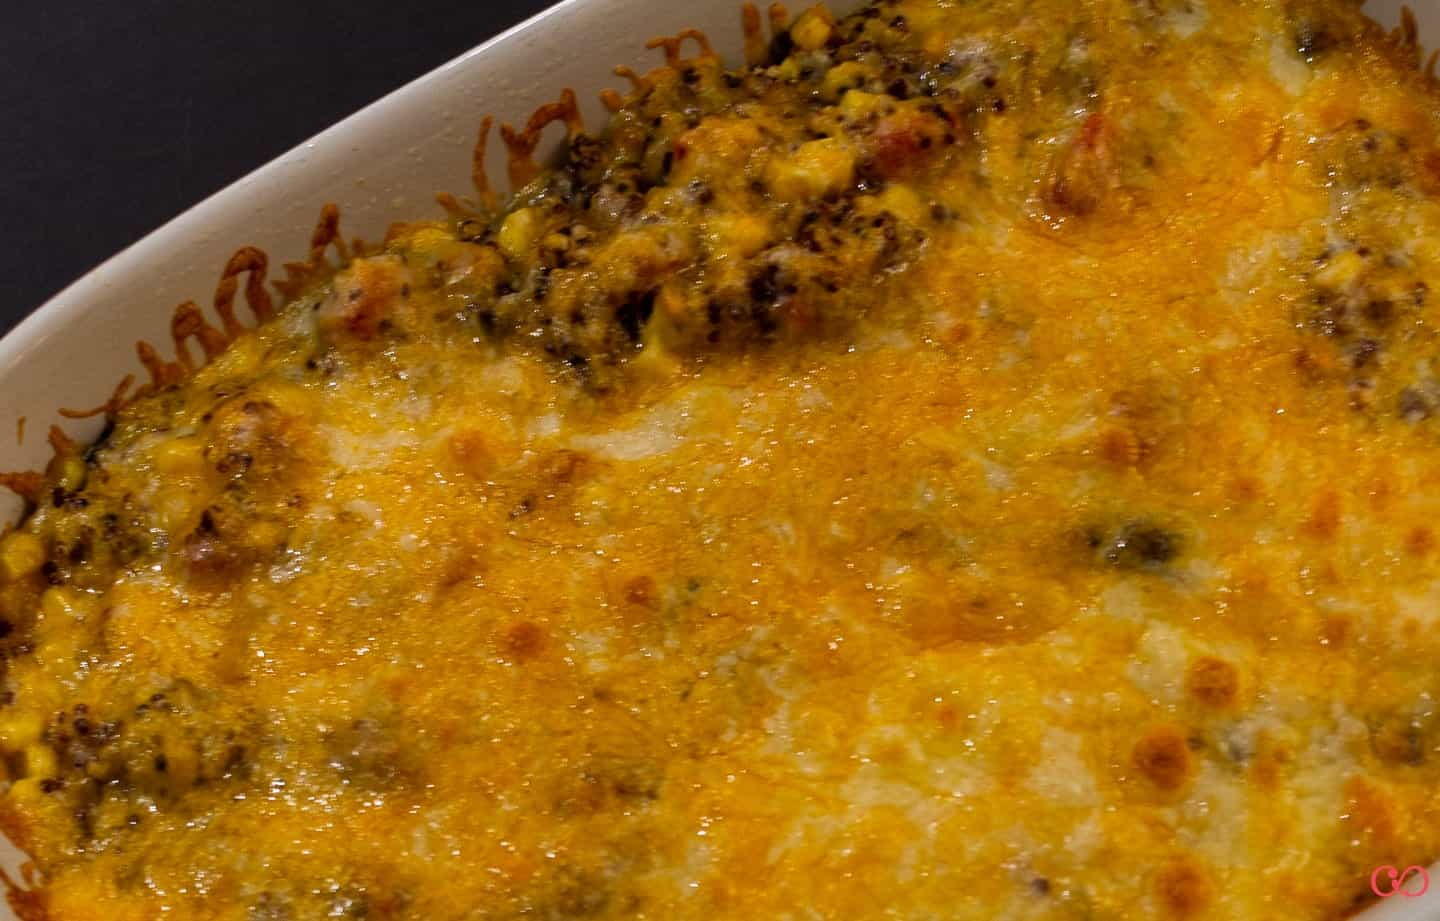 Gluten free Cowboy Caviar Casserole - fresh out of the oven